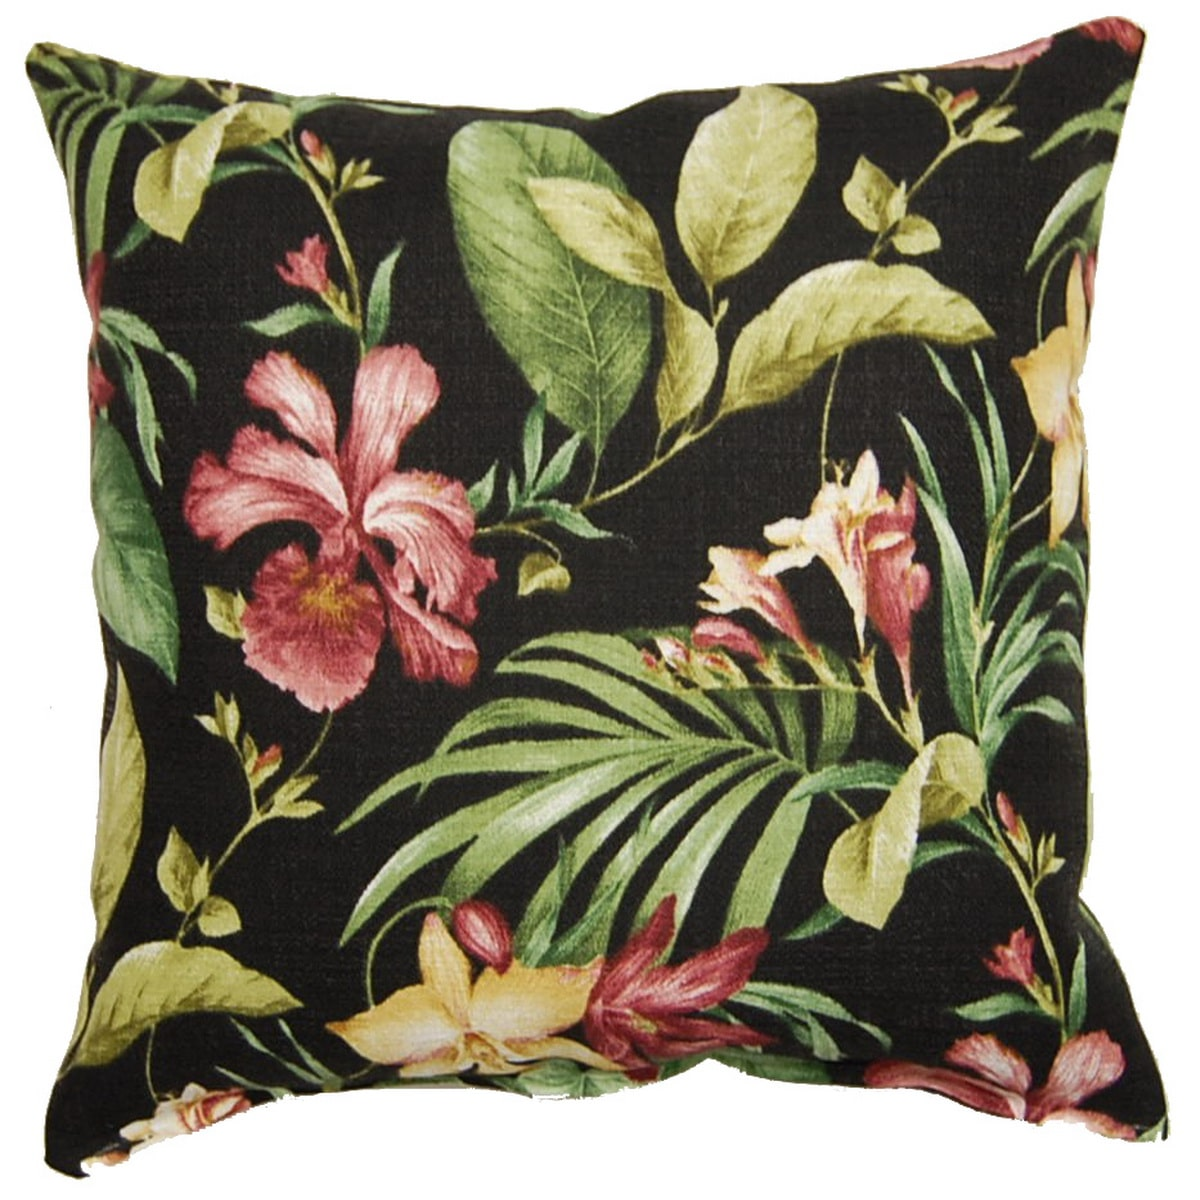 Fox Hill Trading Melanya Midnight 17-inch Outdoor Throw Pillows (Set of 2)